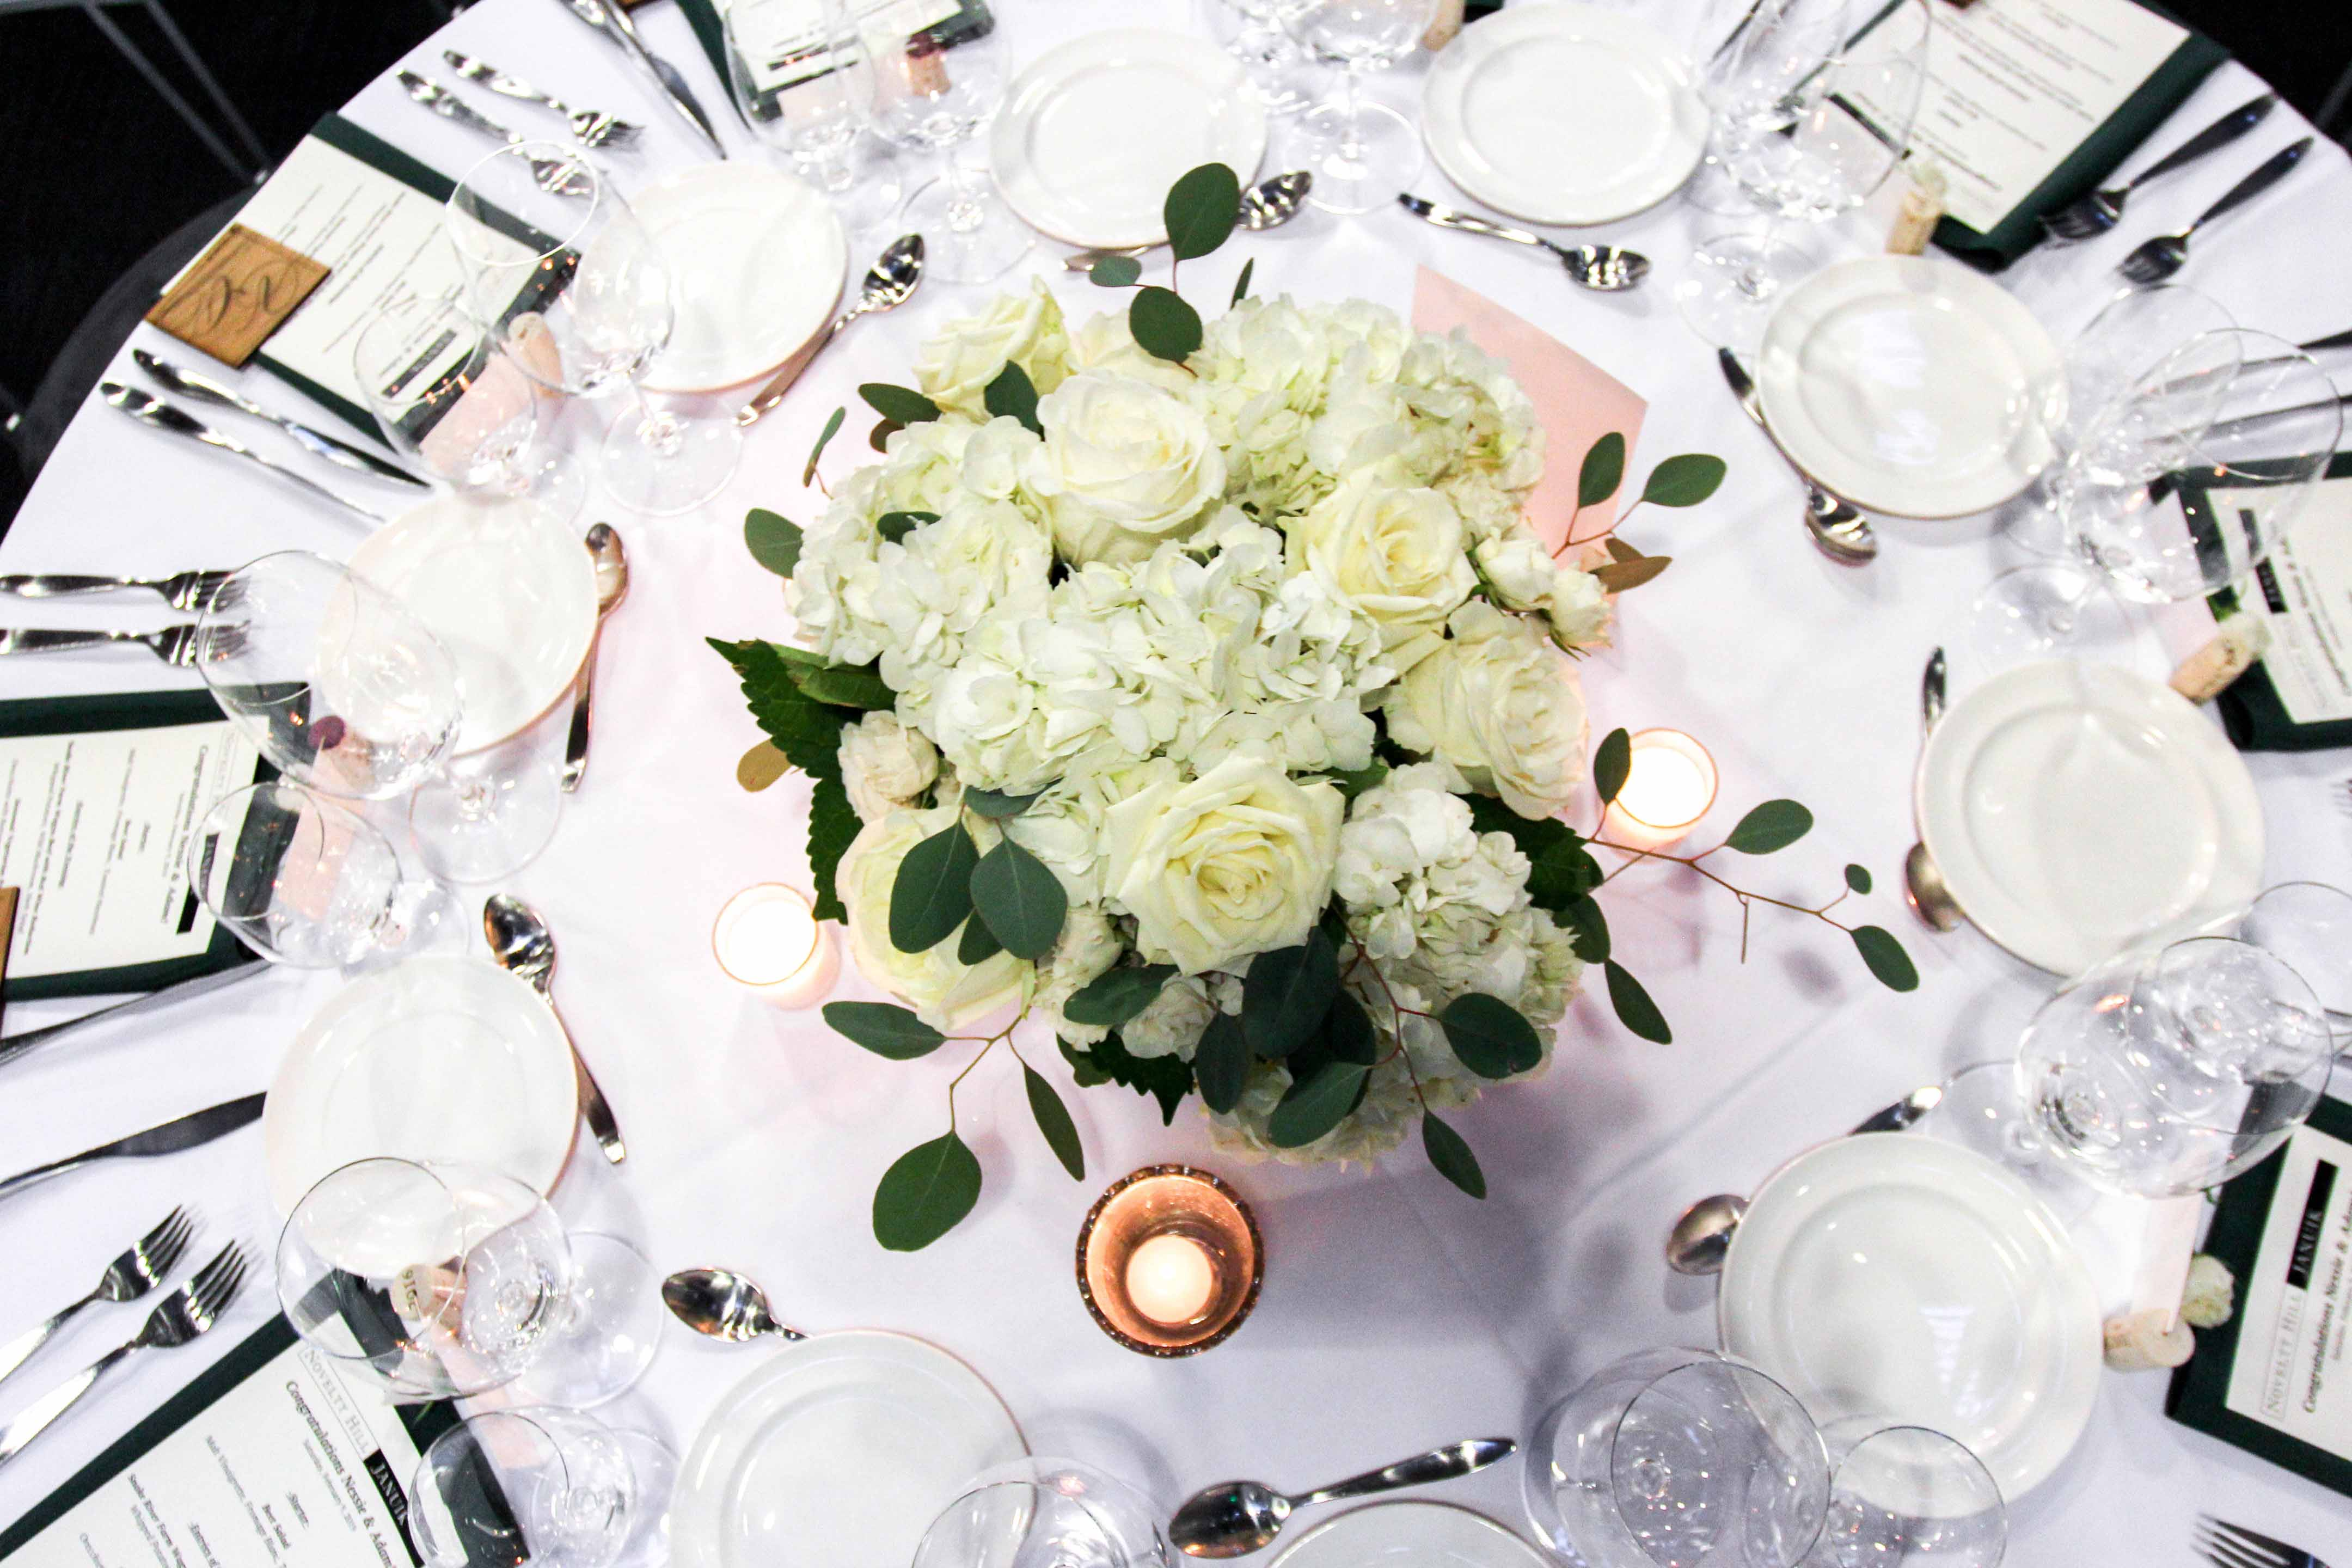 birds-eye view of round reception table with white centerpiece and candles